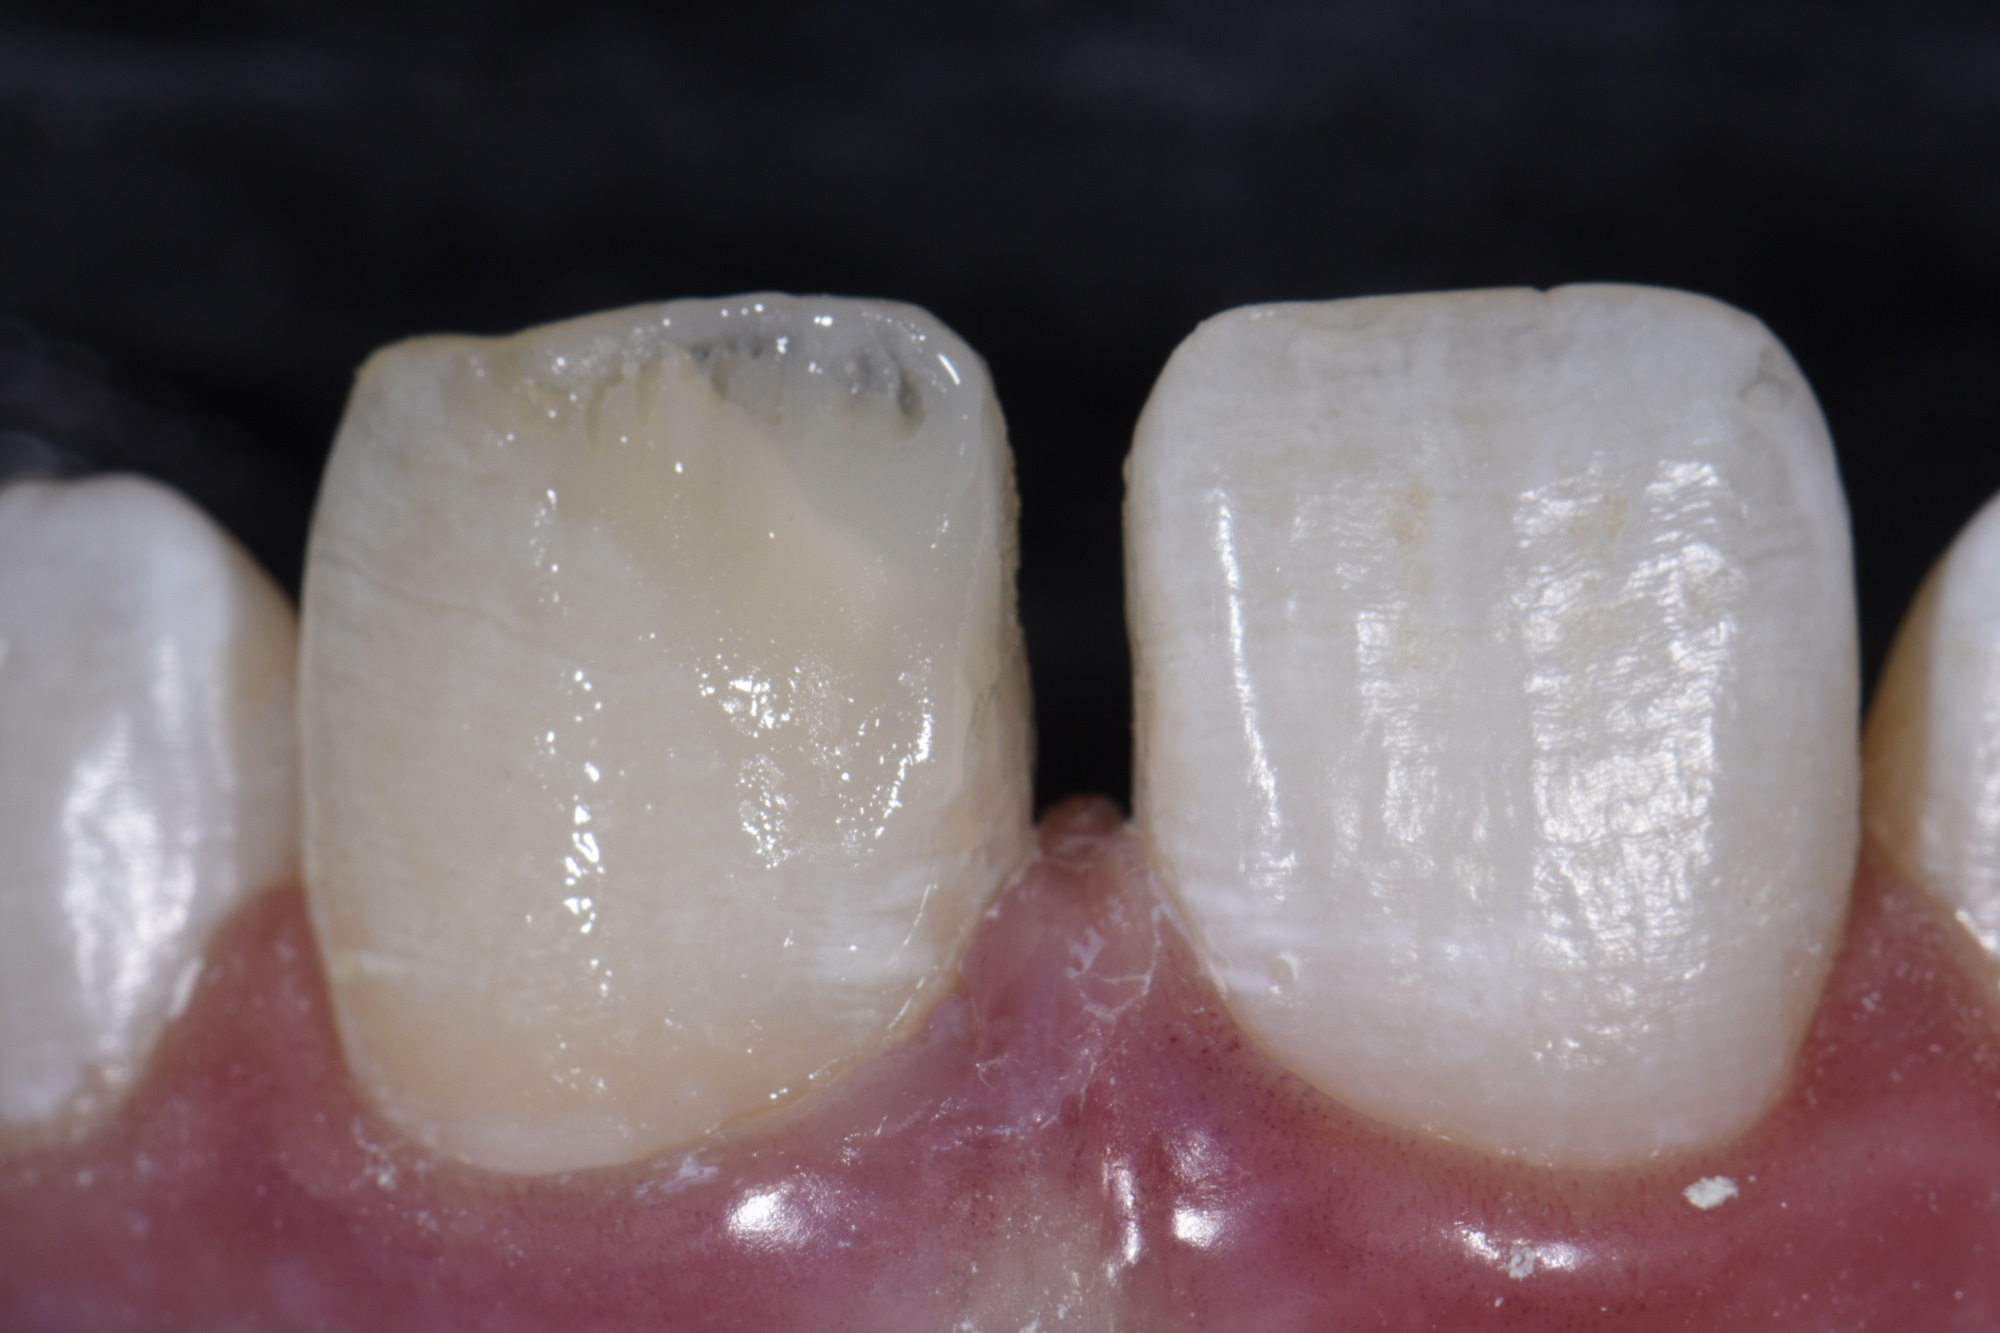 Dentin body construction utilizing shade Si2.